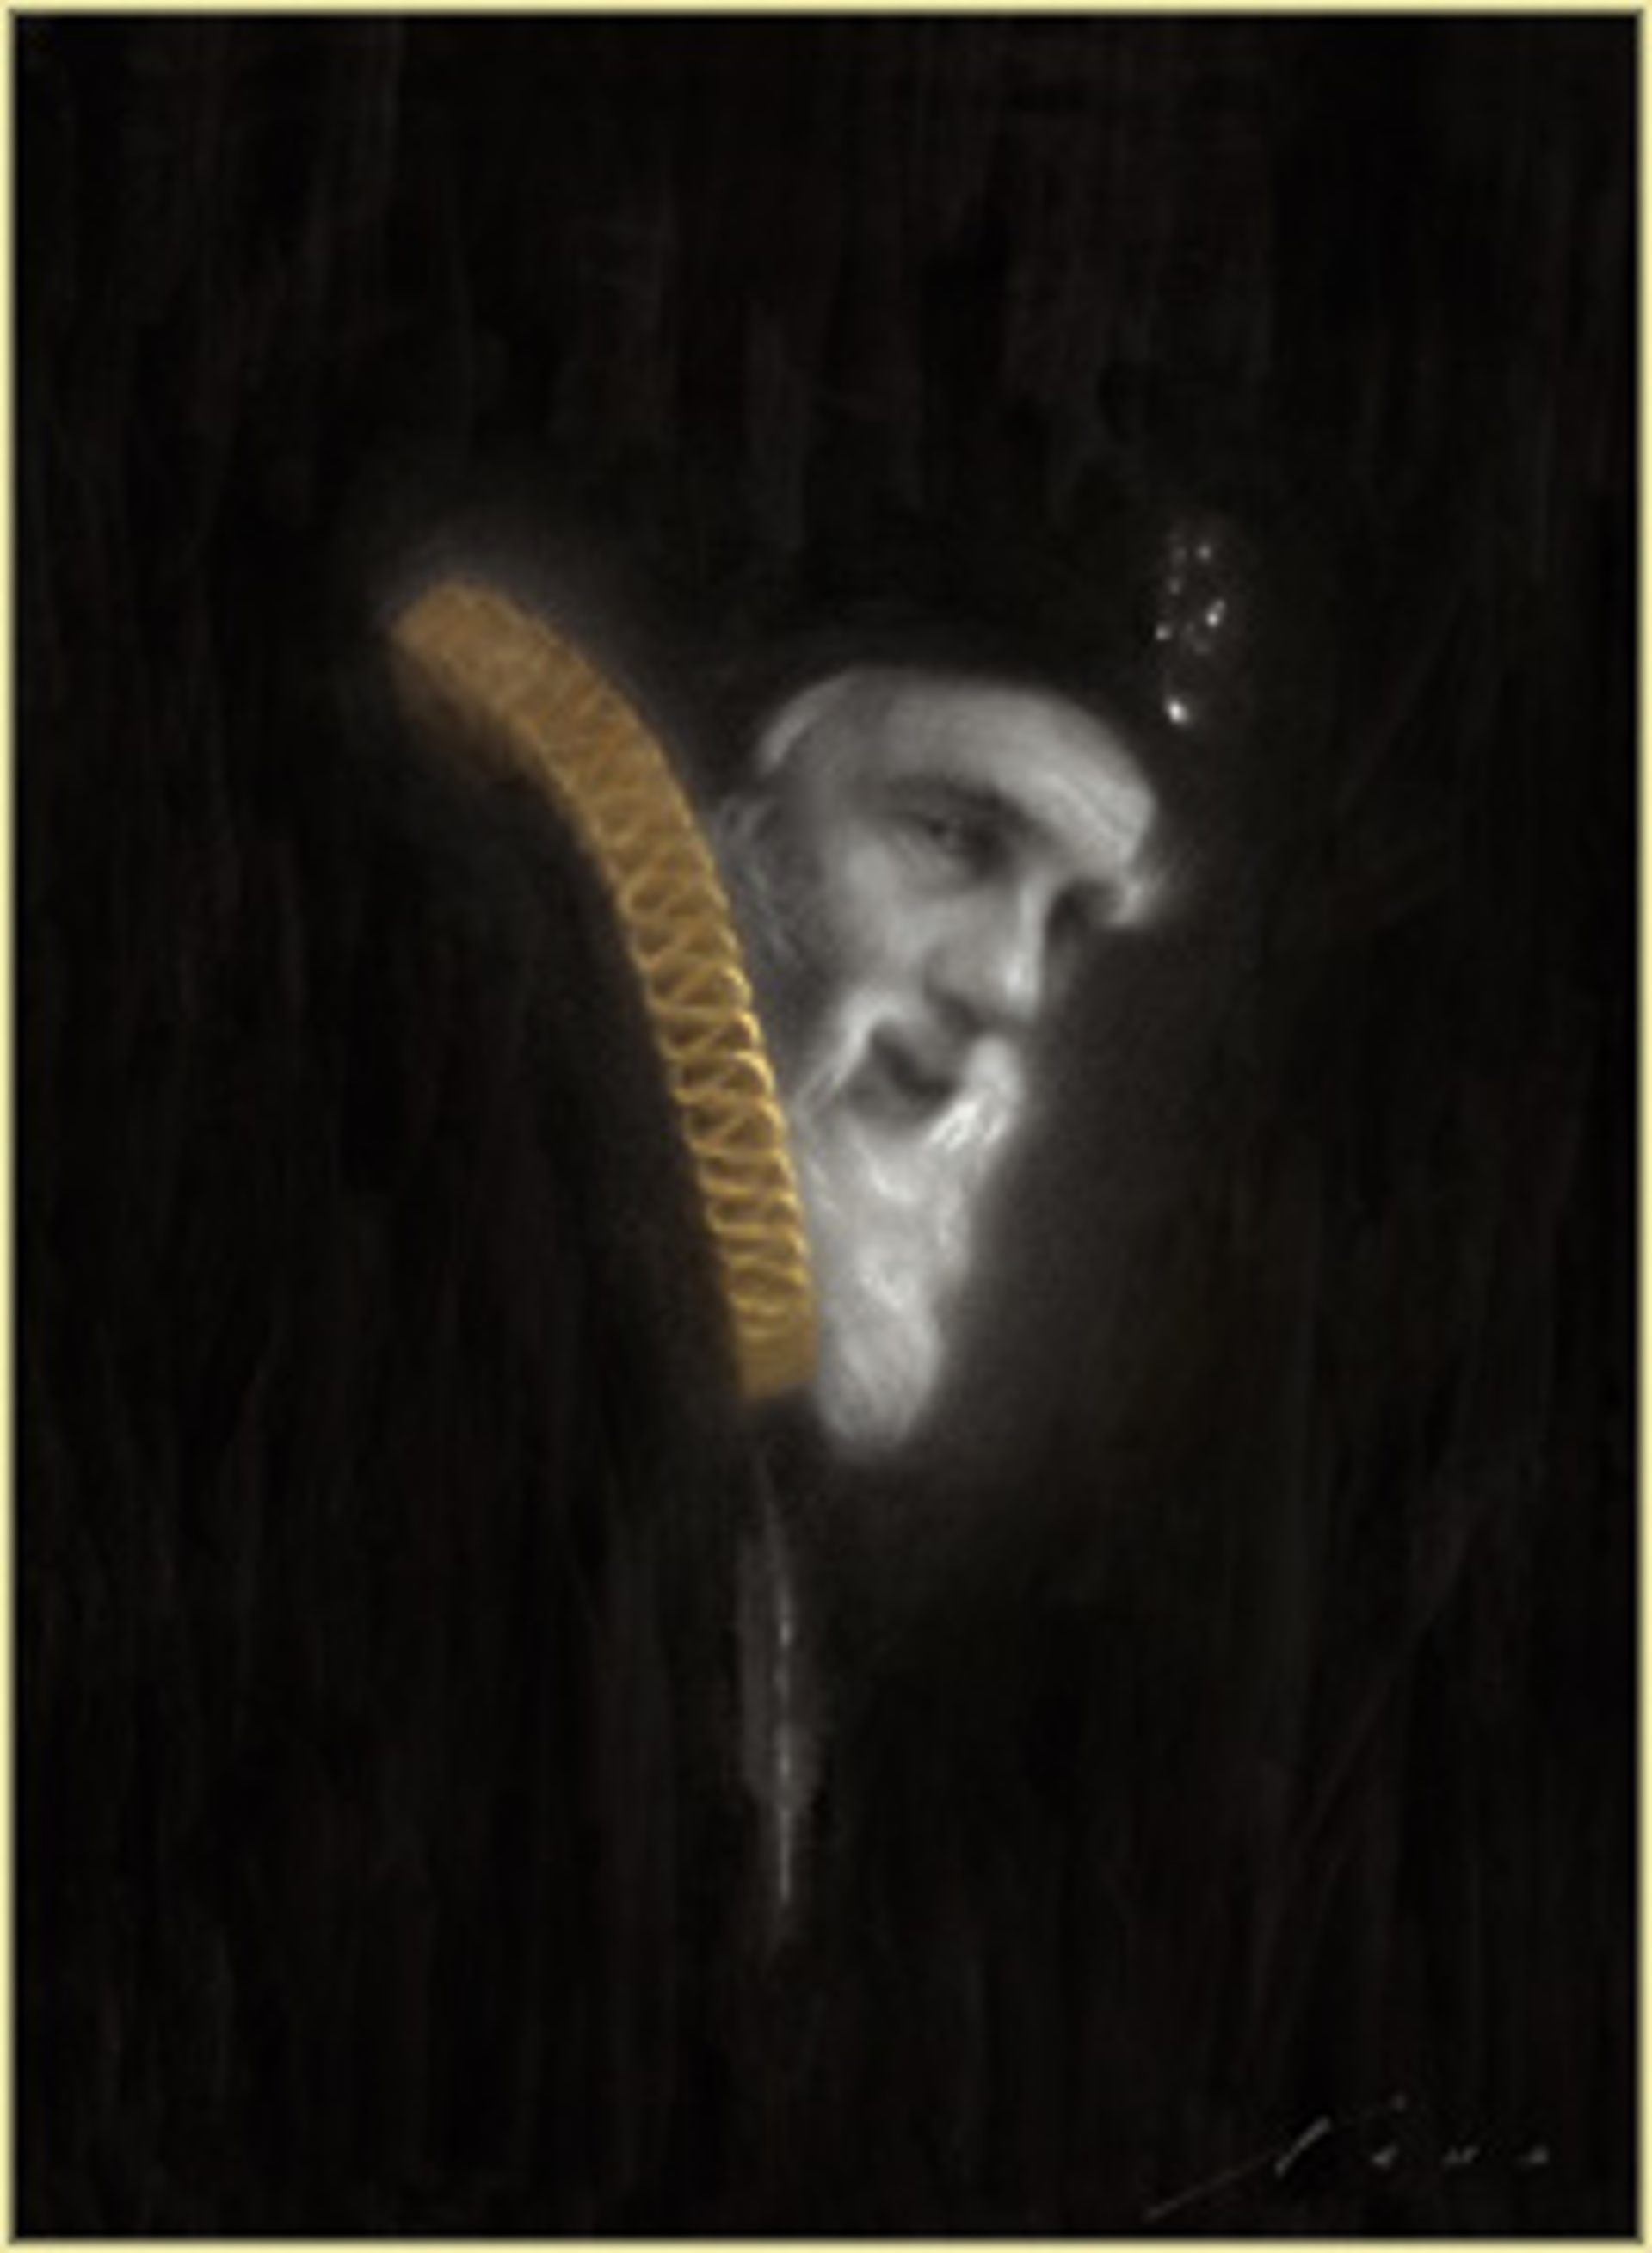 The Serpent by Vincent Xeus